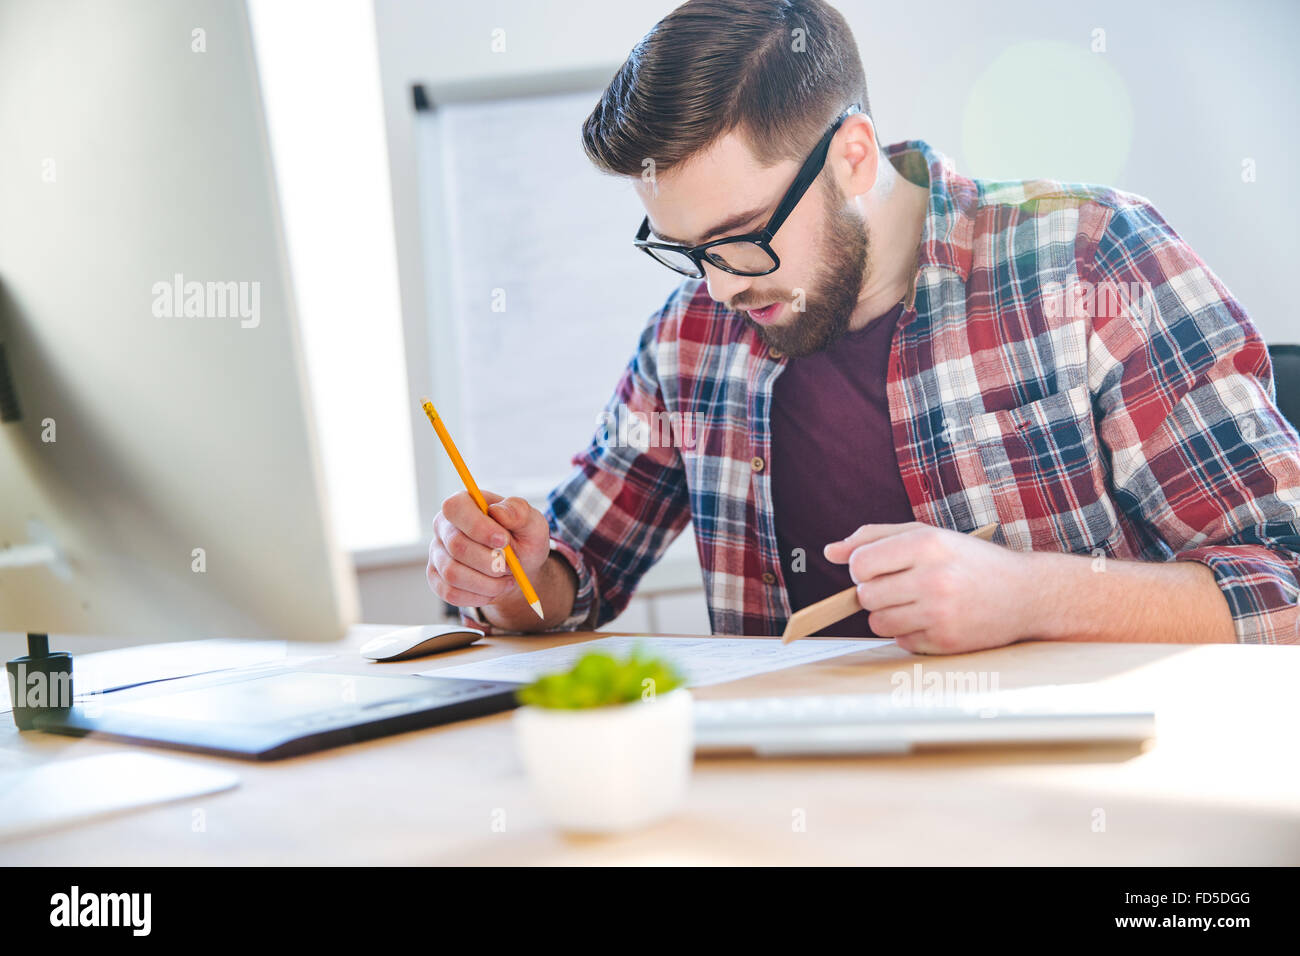 Handsome concentrated young man with beard working with blueprint using ruler and pencil in office - Stock Image